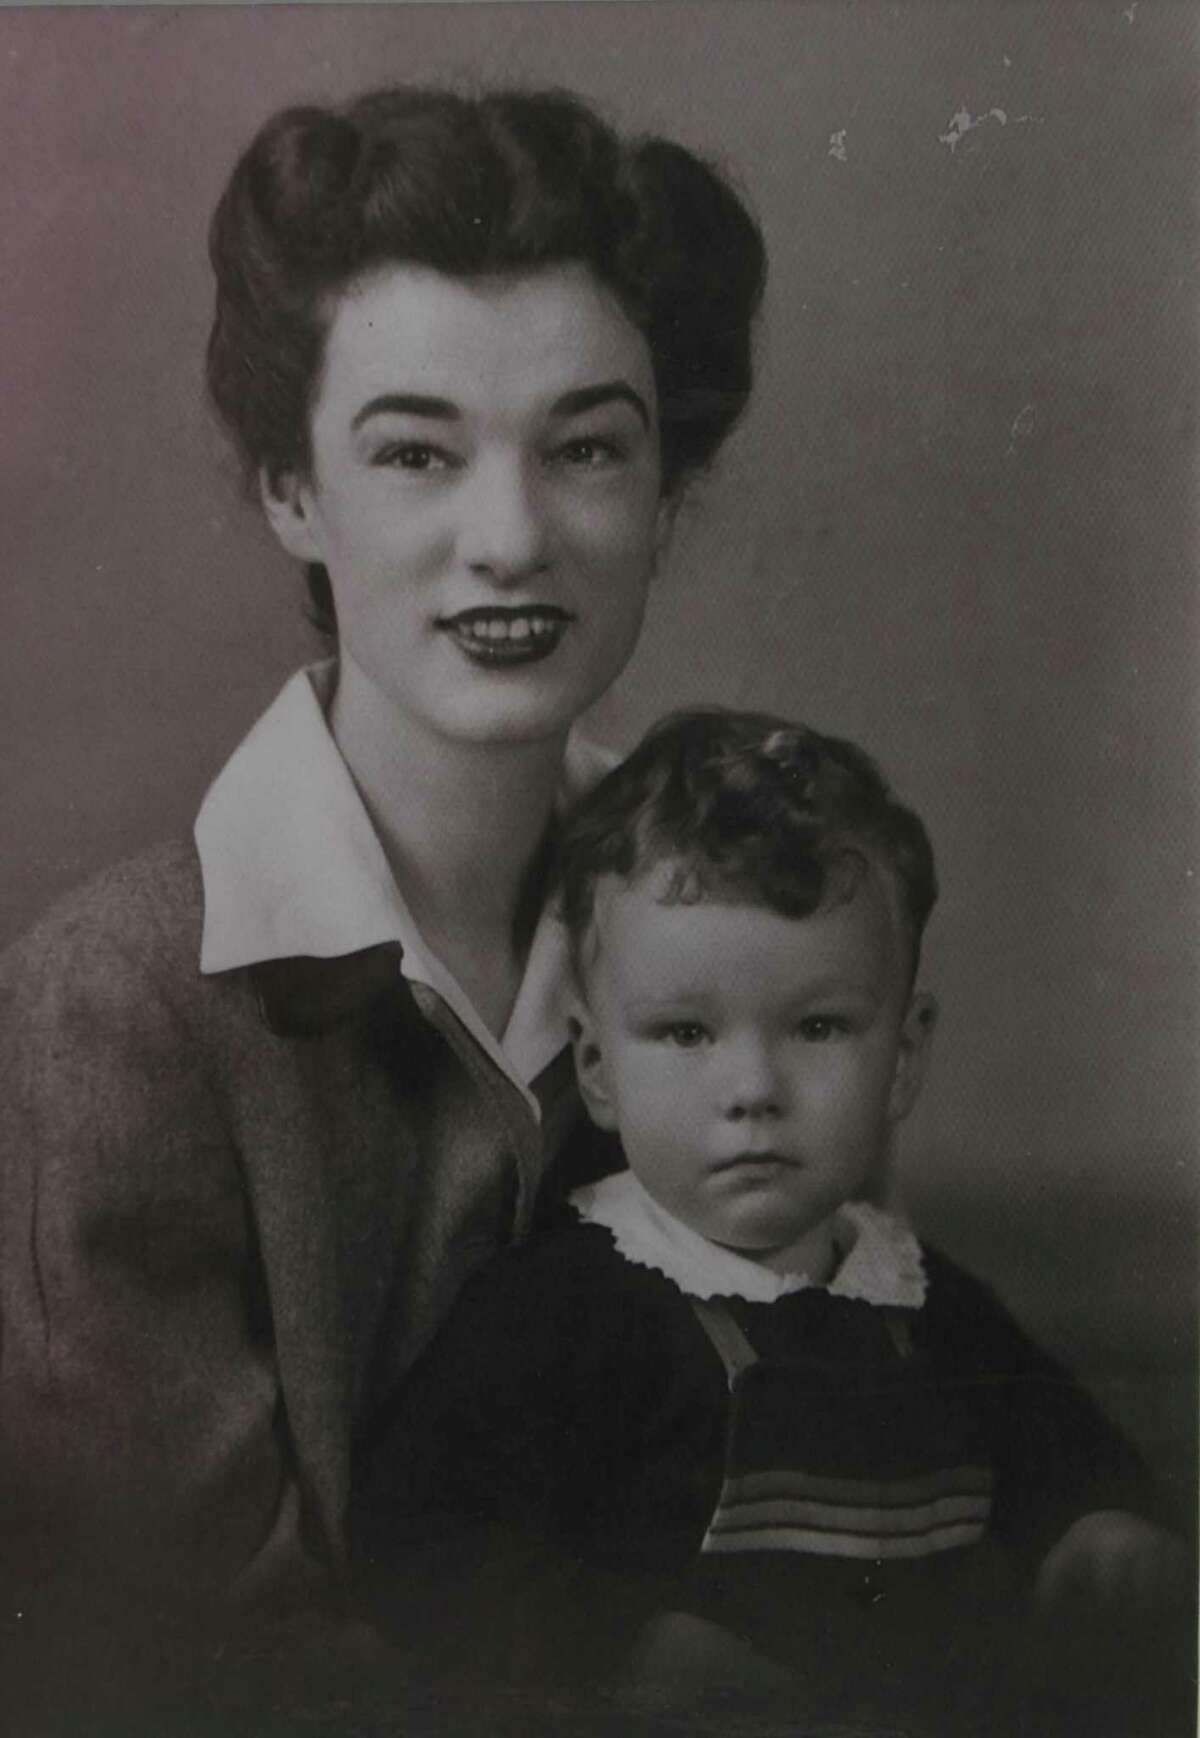 Rich Minus was born in San Antonio on Dec. 10, 1940. He's pictured in this undated photograph with his mother, Julie Lynk Minus. His father, William Slaughter Minus, was a nephew of Texas Ranger John Slaughter.